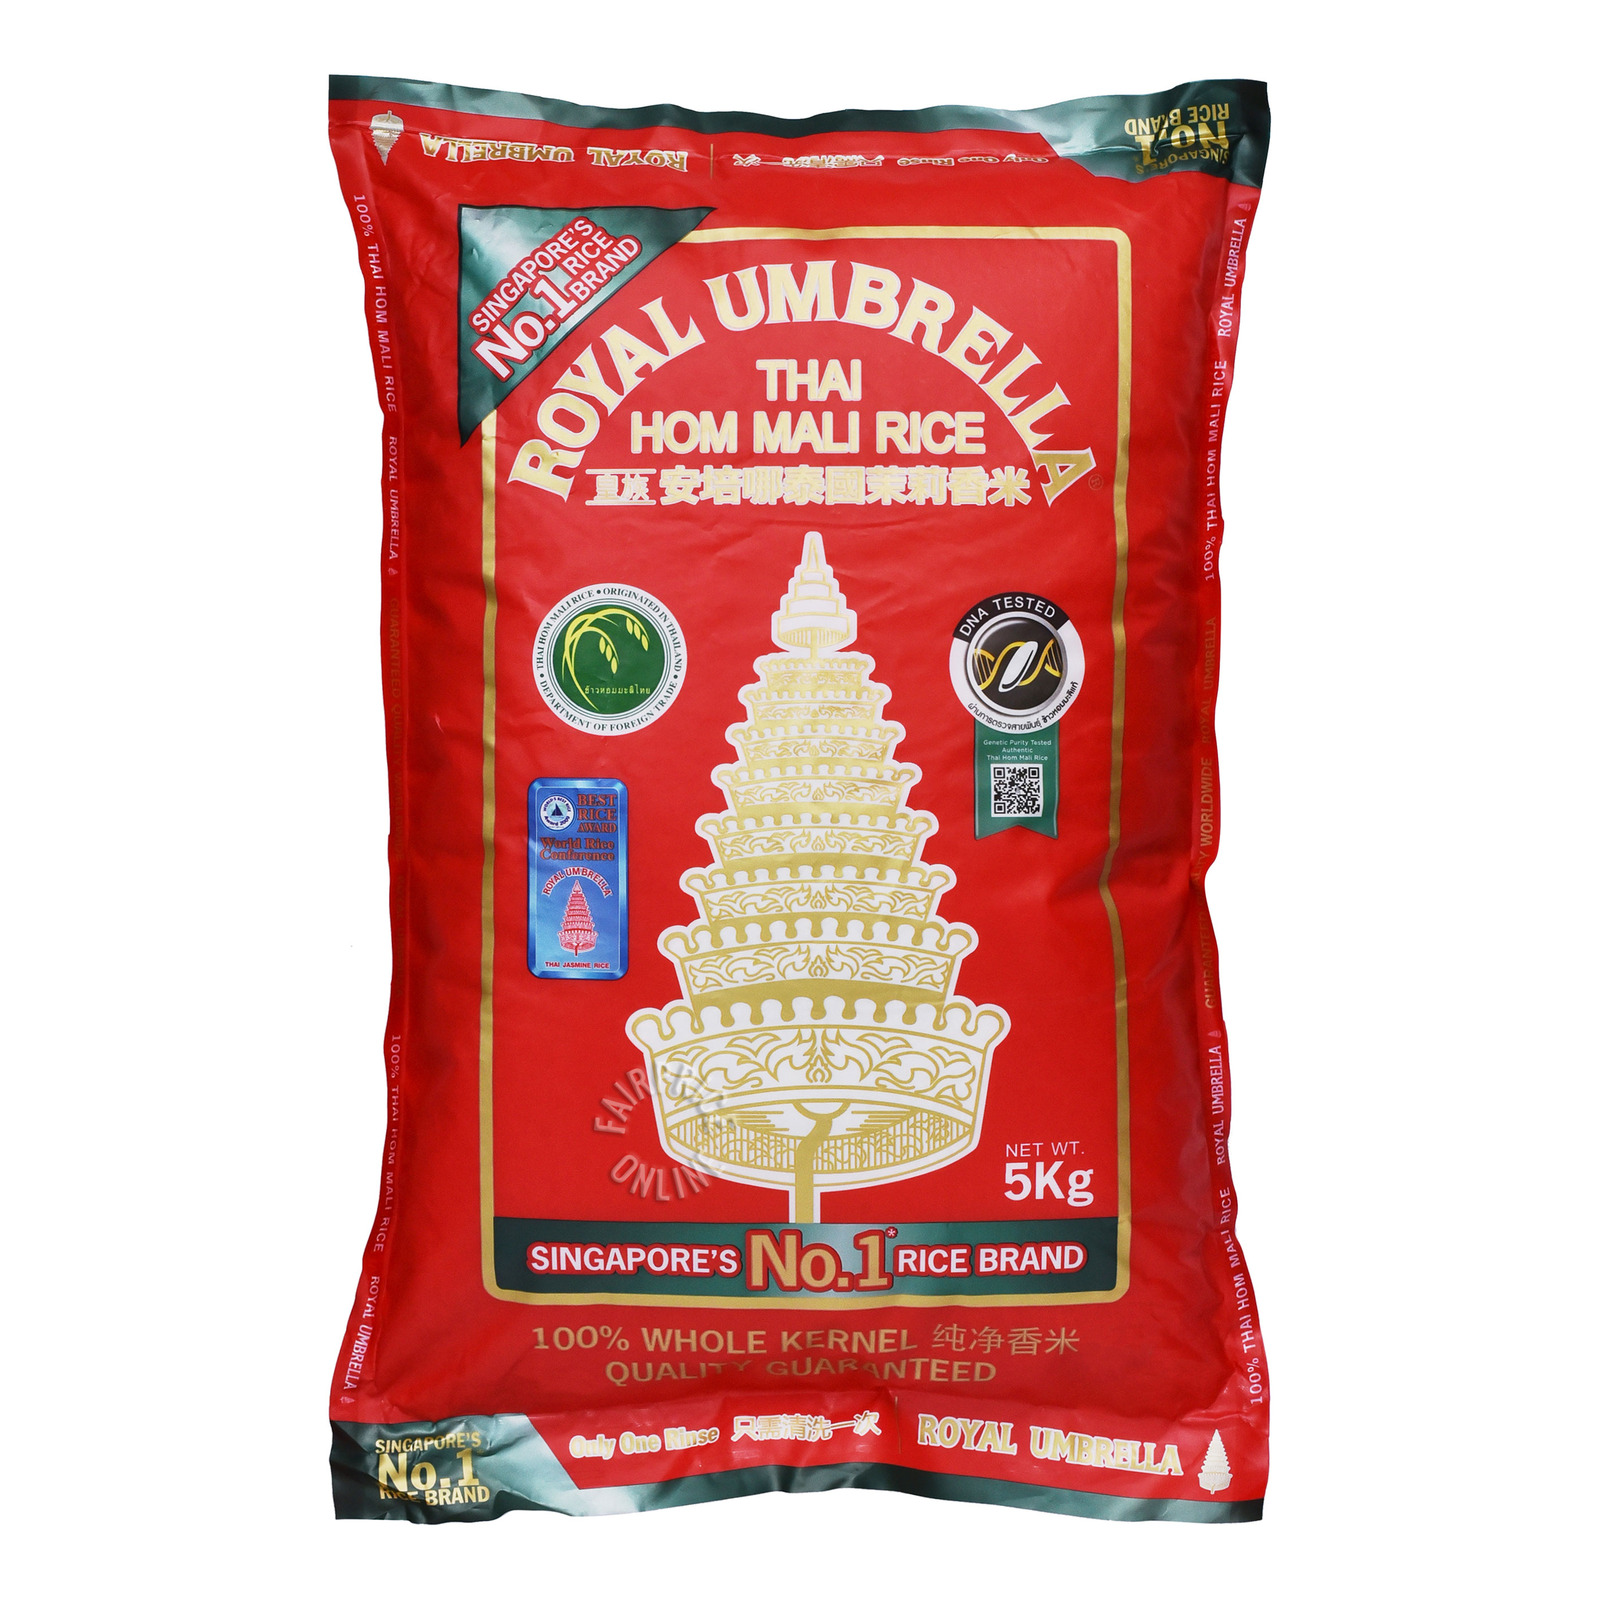 Royal Umbrella Thai Hom Mali Rice